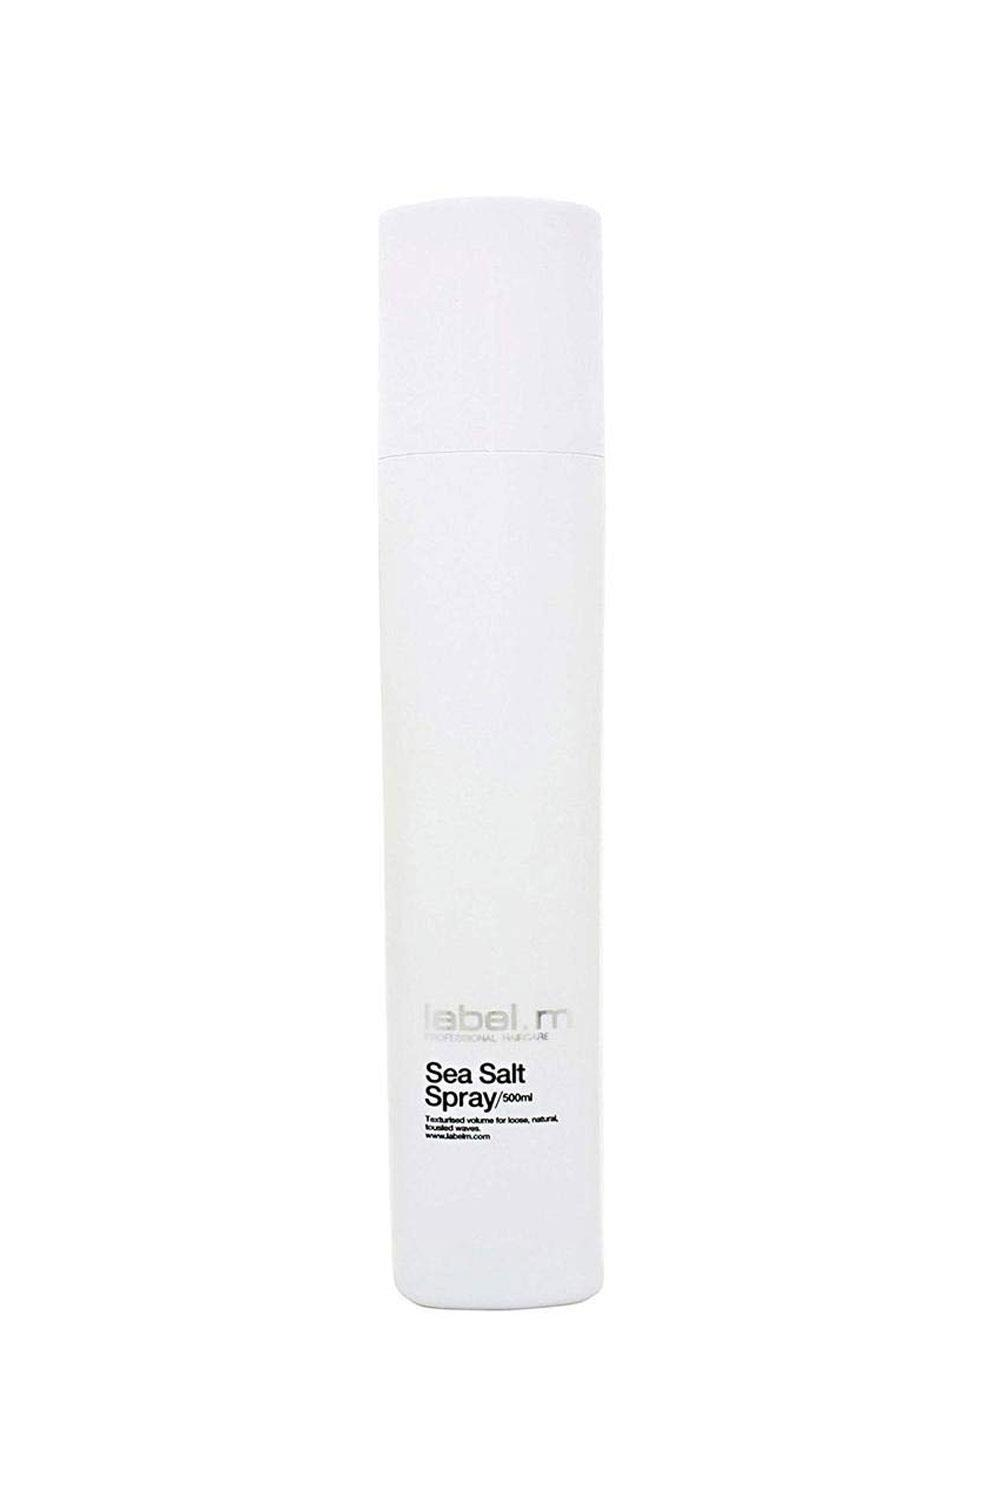 spray sal Sea Salt Spray de Label.M, 22,74€